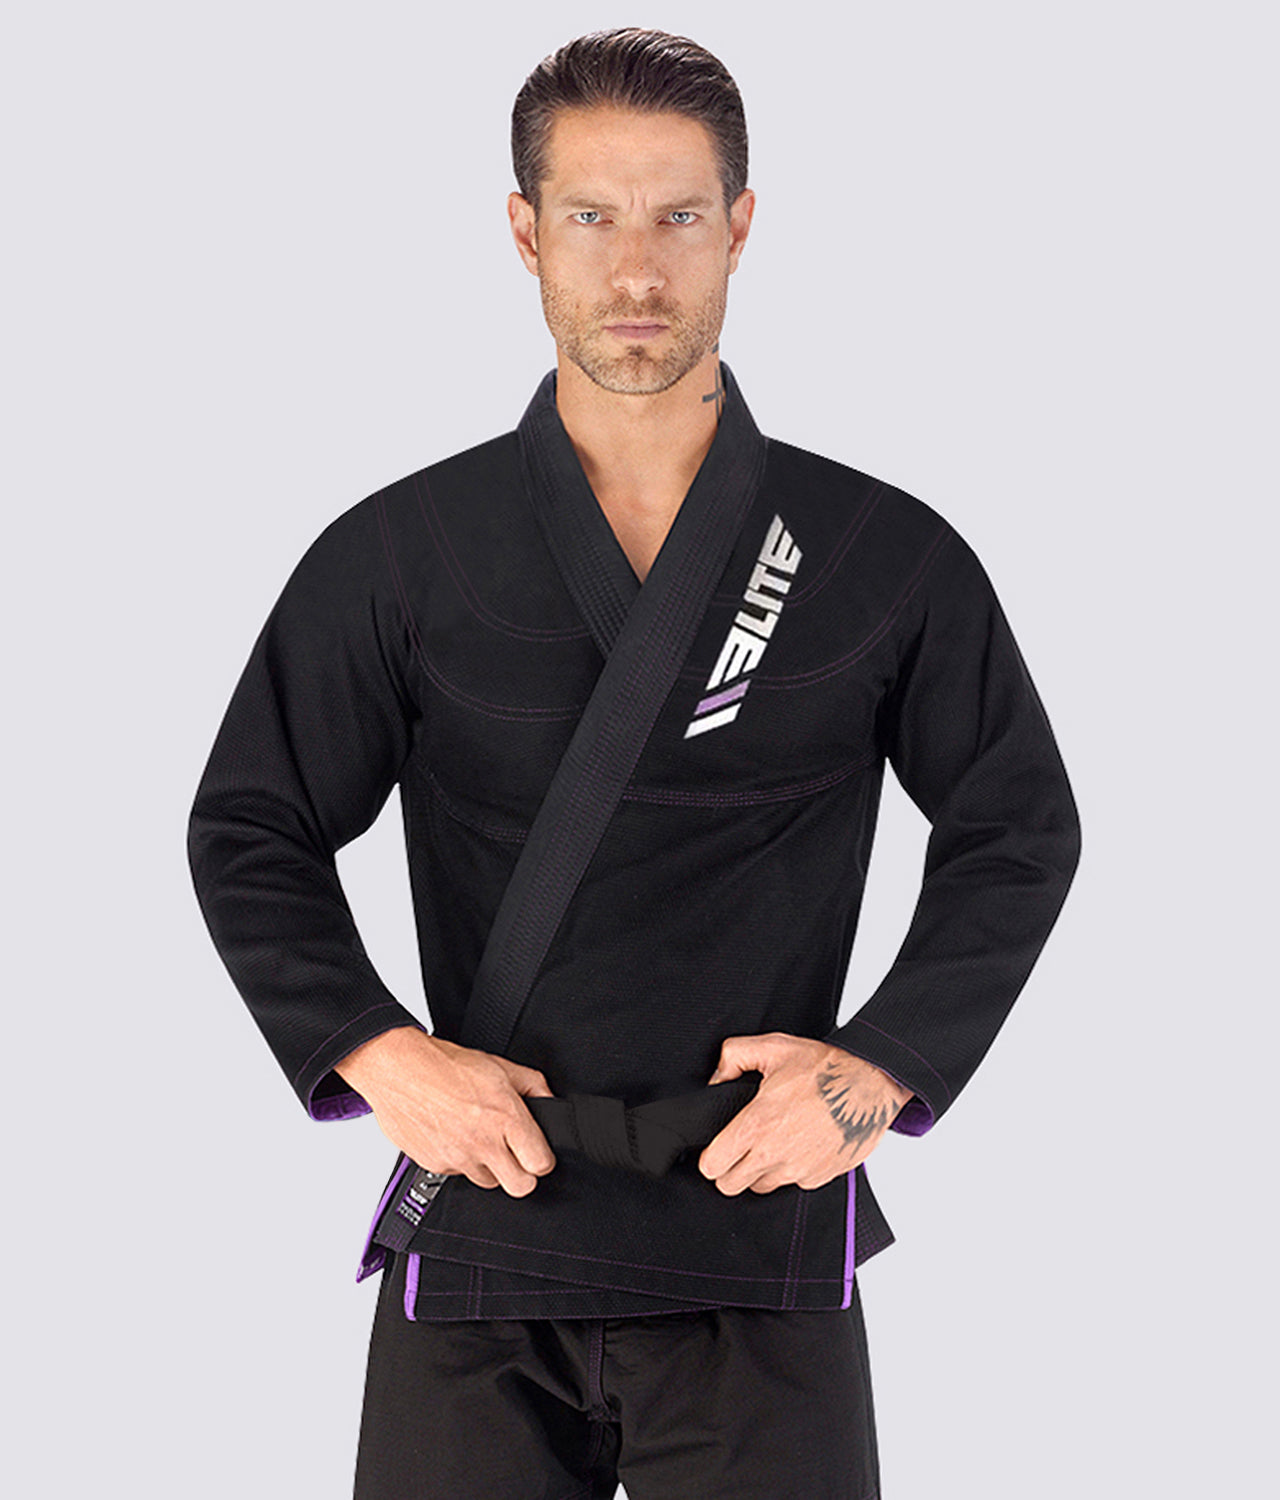 Elite Sports Ultra Light Preshrunk Comfortable Black Adult Brazilian Jiu Jitsu BJJ Gi  With Free White Belt